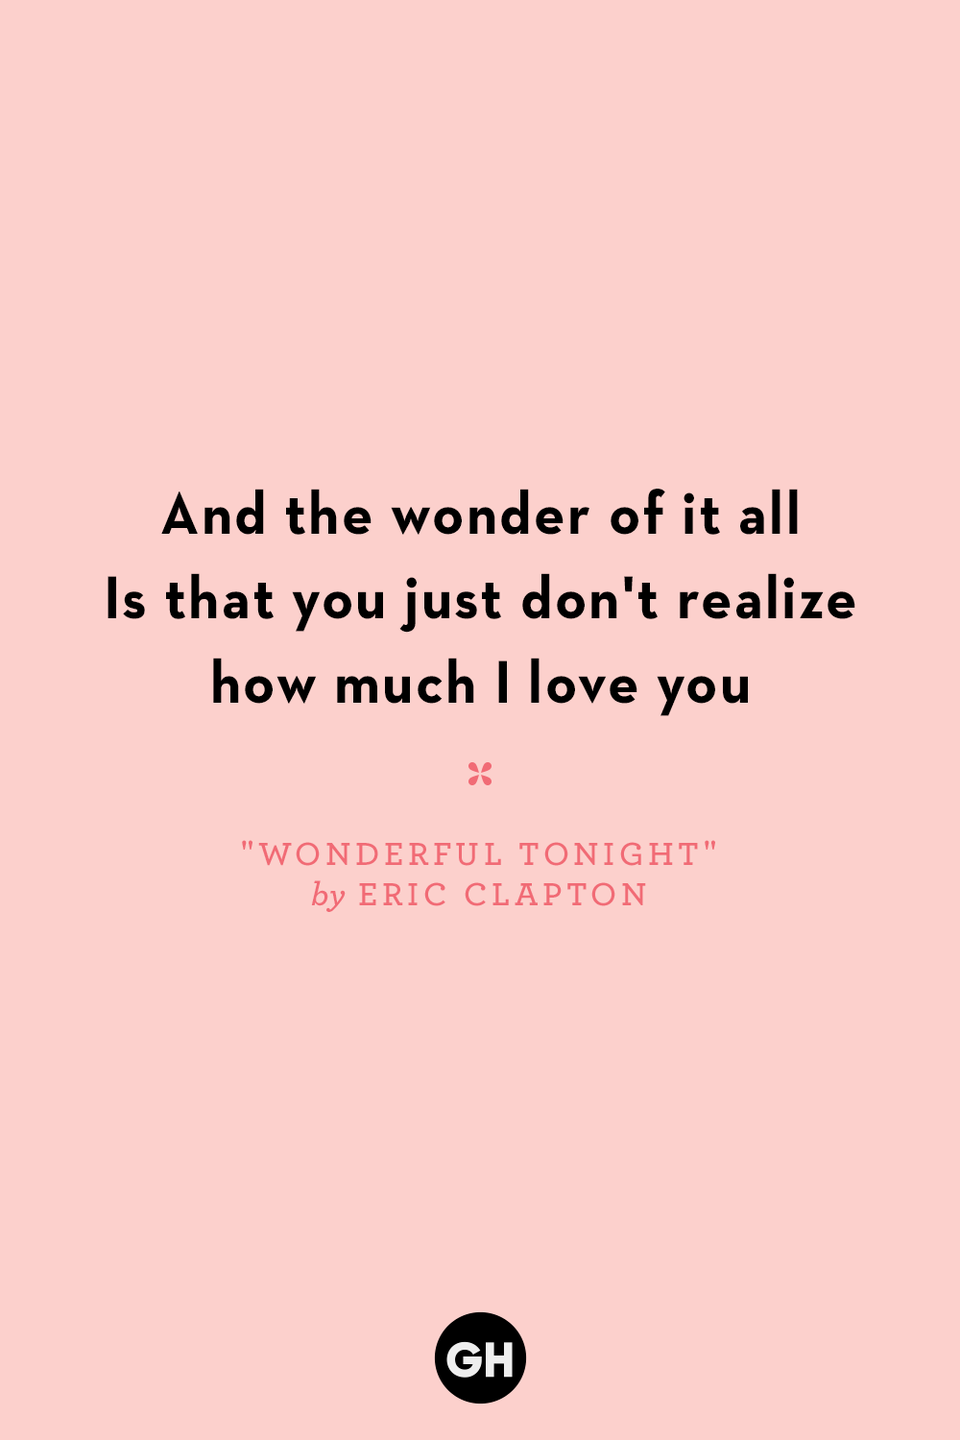 <p>And the wonder of it all</p><p>Is that you just don't realize how much I love you</p>